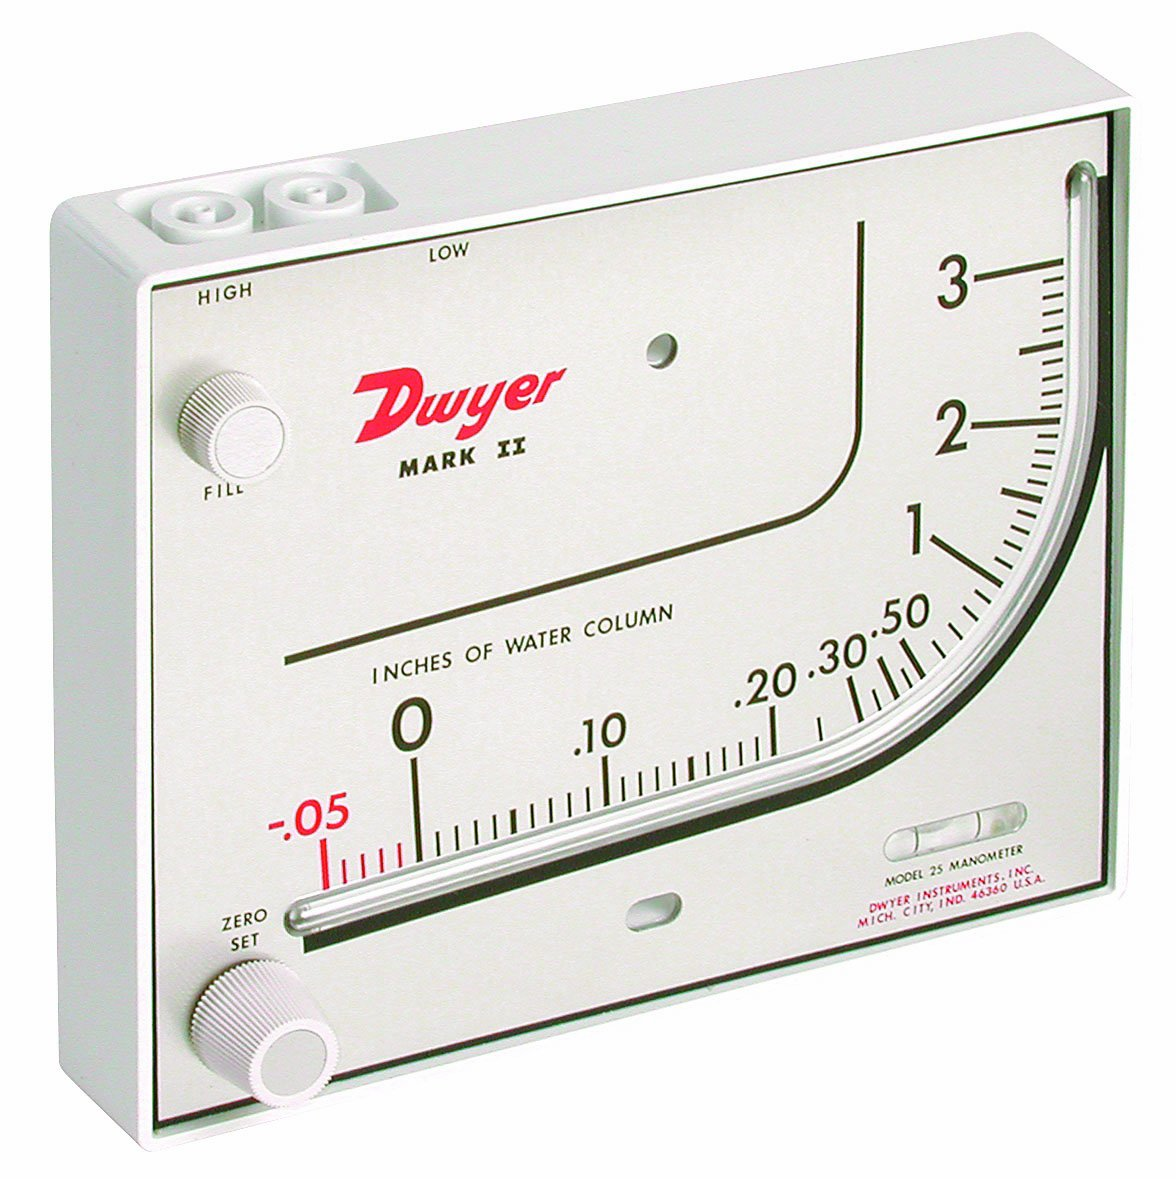 Dwyer Series Mark II 25 Molded Plastic Manometer, Inclined-Vertical Scale, 0 to 3 inH2O Measuring Range, Red Gauge Fluid, 0.826 sp. gr. by Dwyer